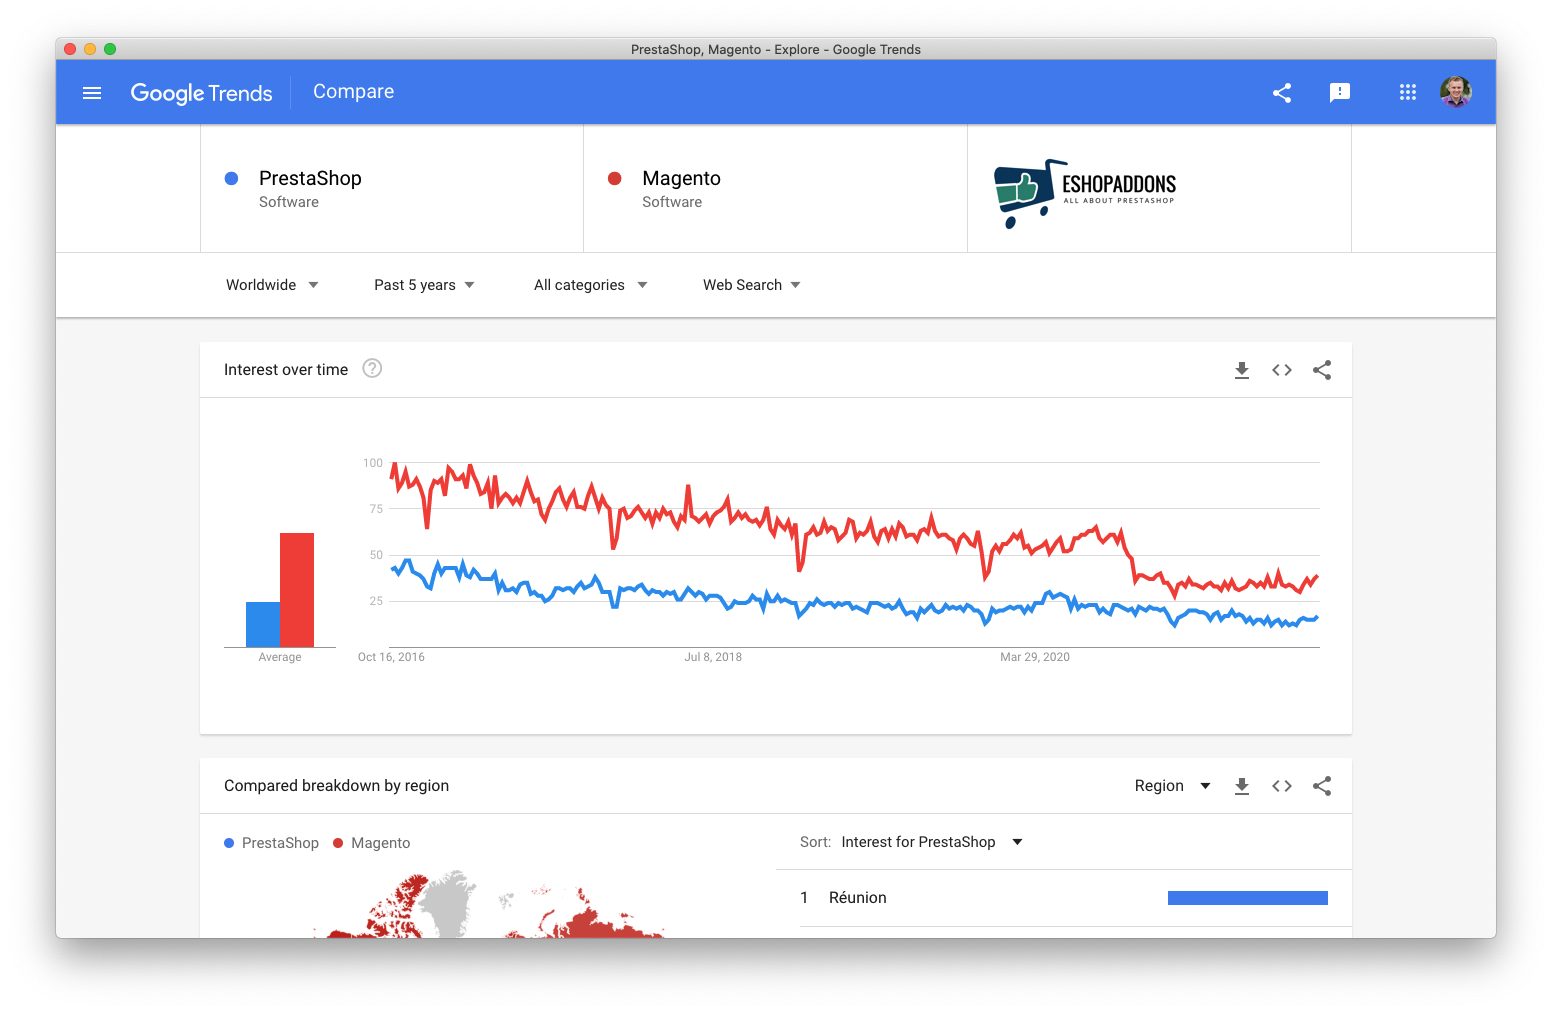 PrestaShop (blue) and Magento (red) five year trends